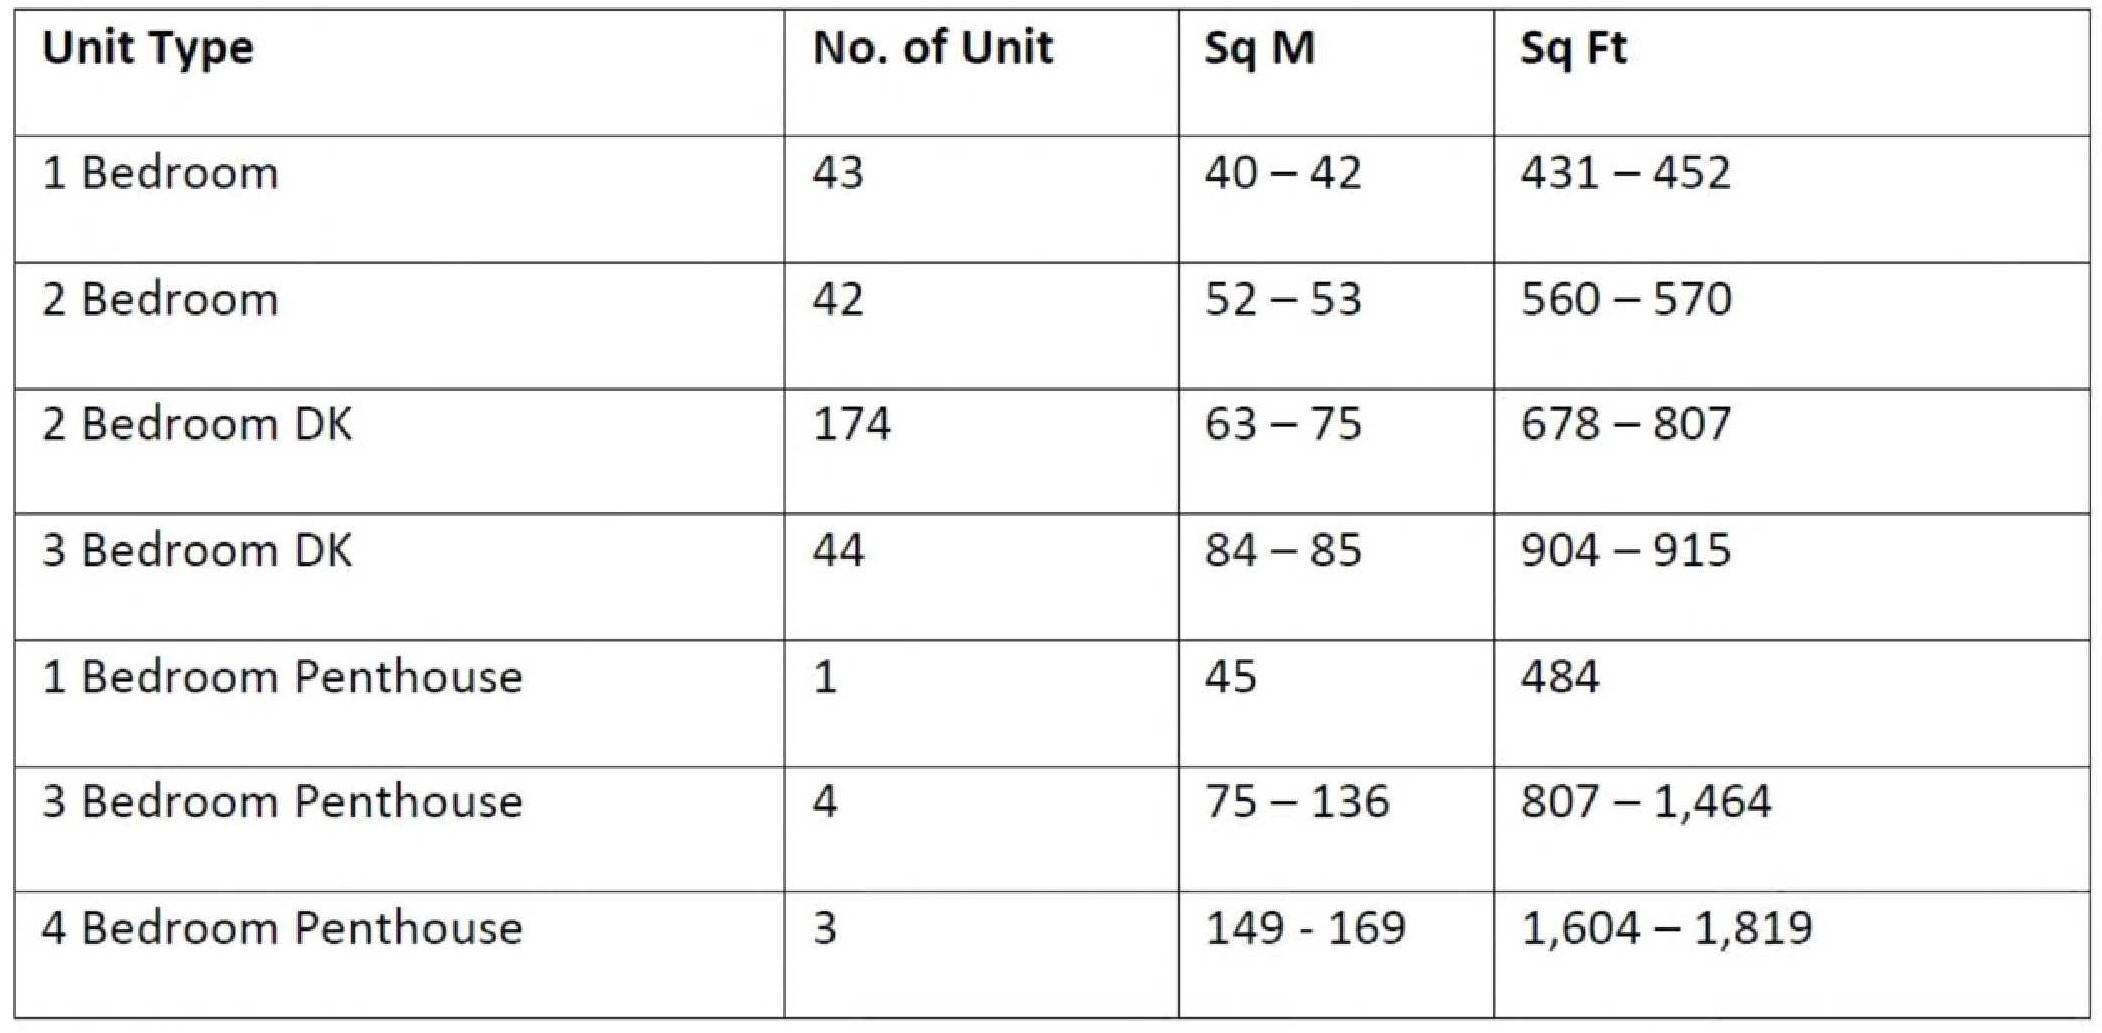 City Gate Unit Distribution